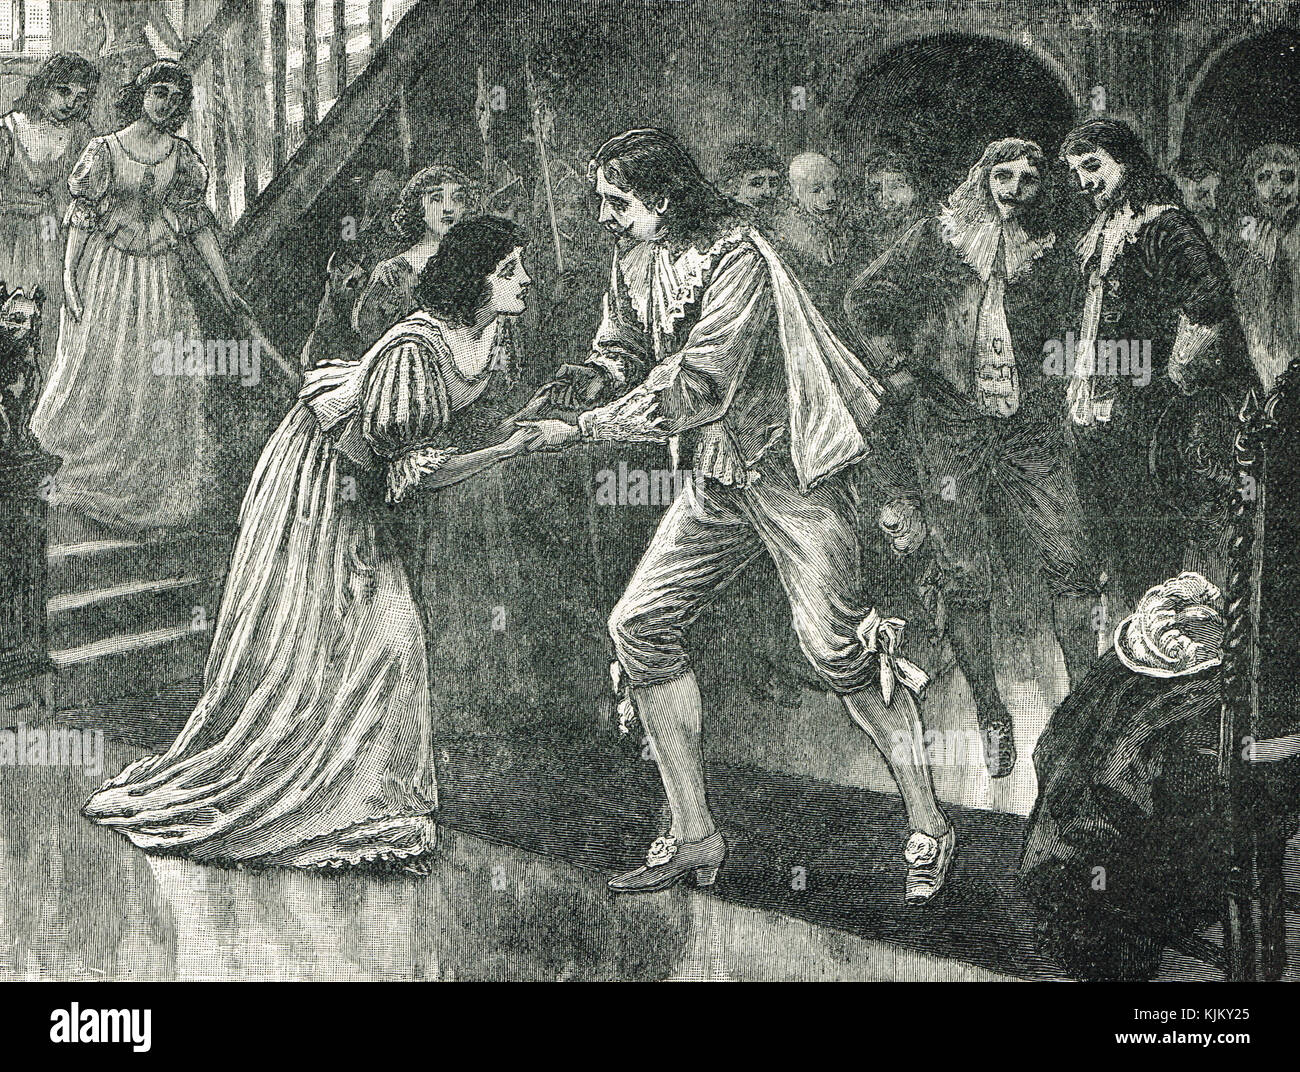 Charles I welcoming his Queen to England, 1625 - Stock Image